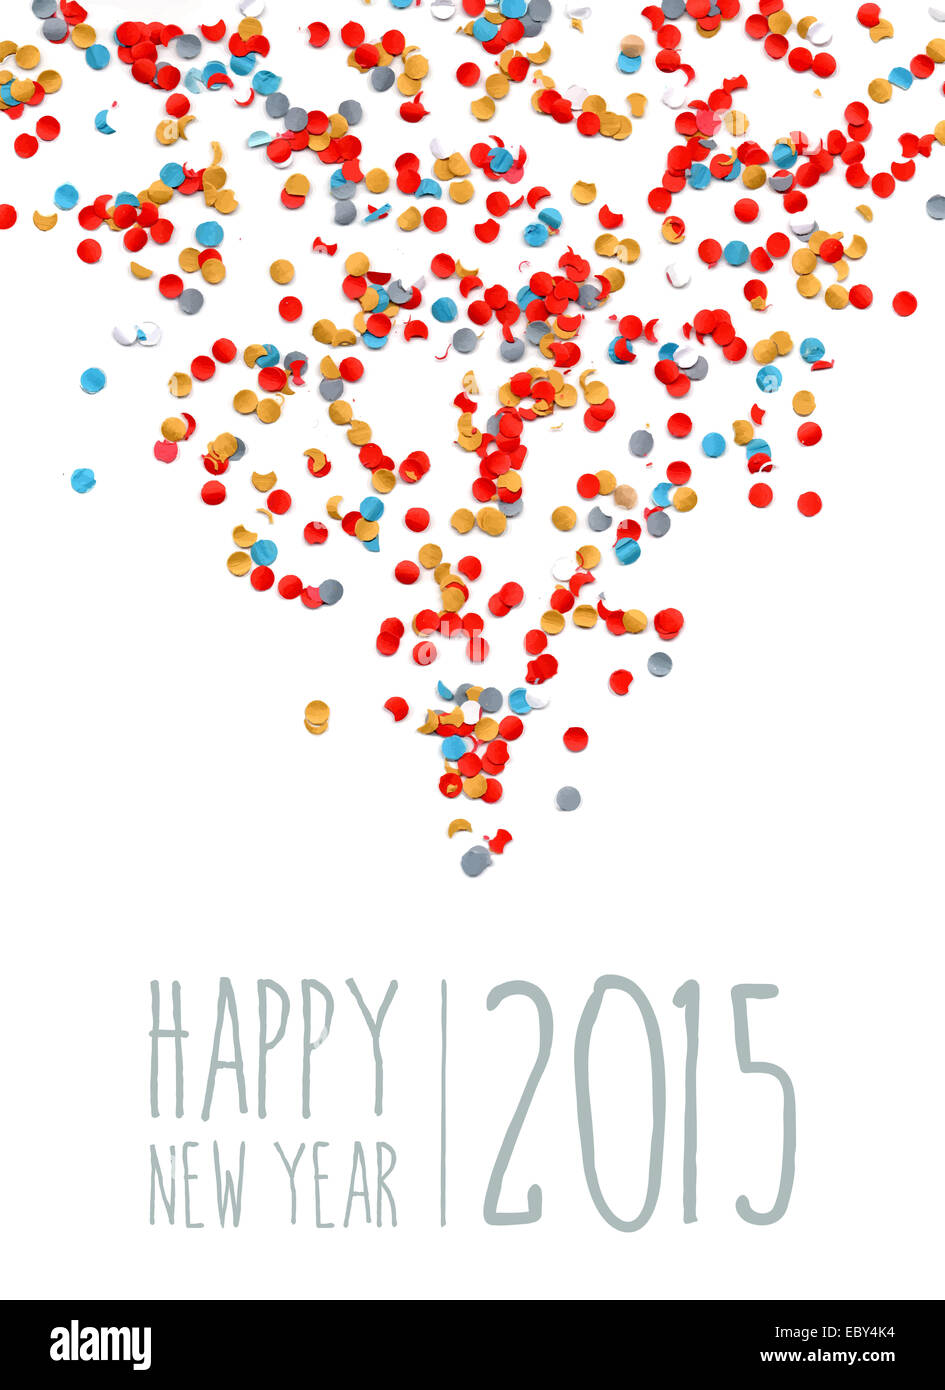 Happy New Year Eve 2015 Celebration With Colorful Shower Confetti